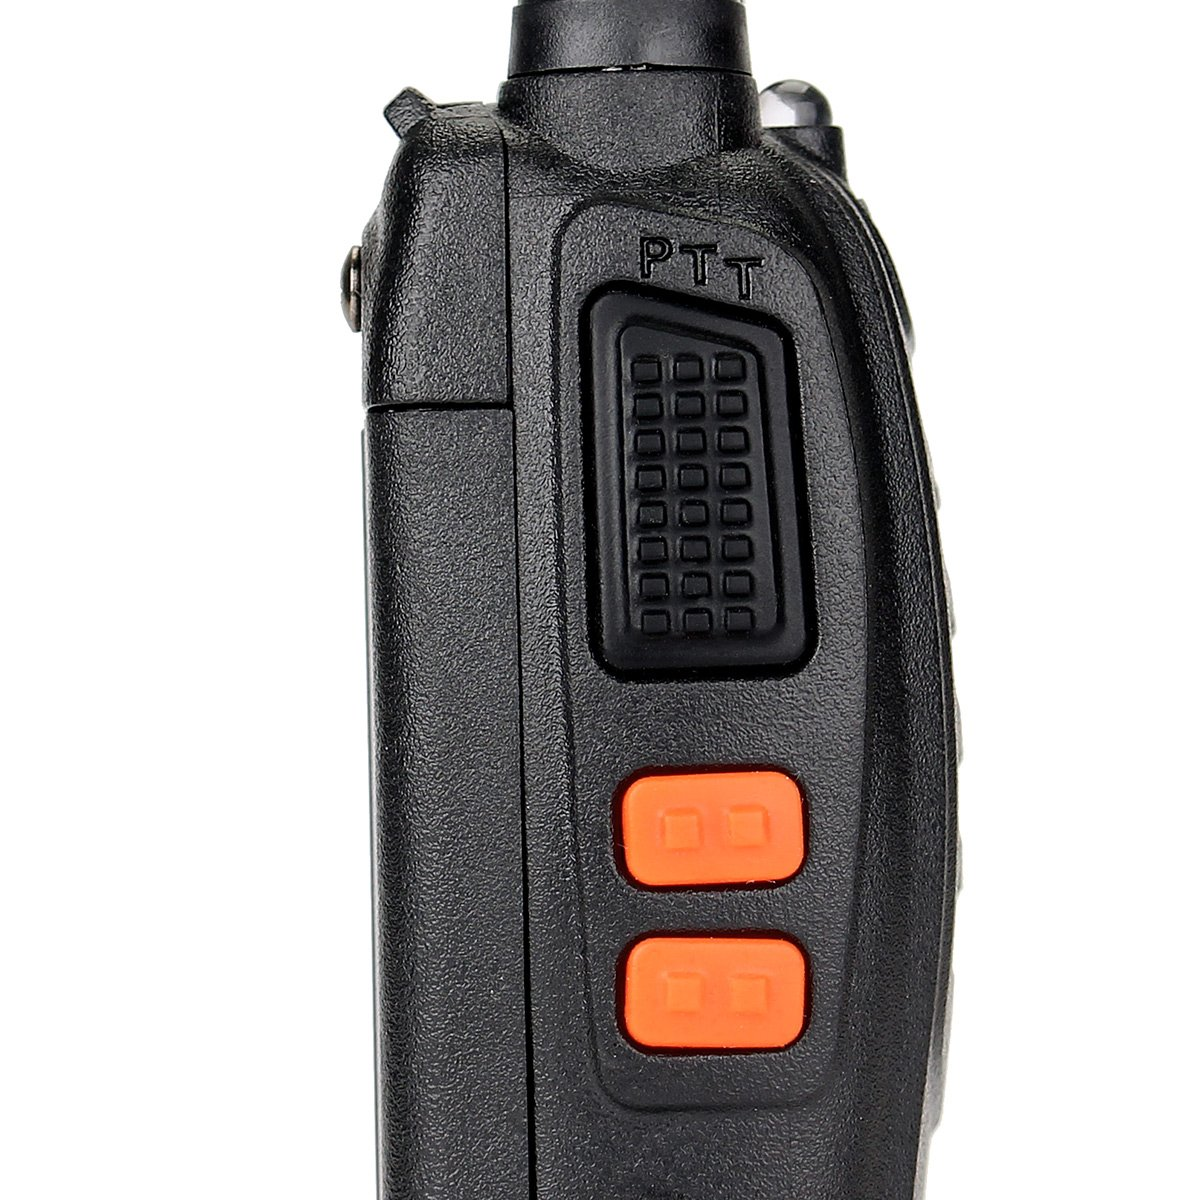 Retevis H-777 Two Way Radio UHF 400-470MHz Signal Frequency Single Band 16 CH Walkie Talkies with Original Earpiece (10 Pack) by Retevis (Image #9)